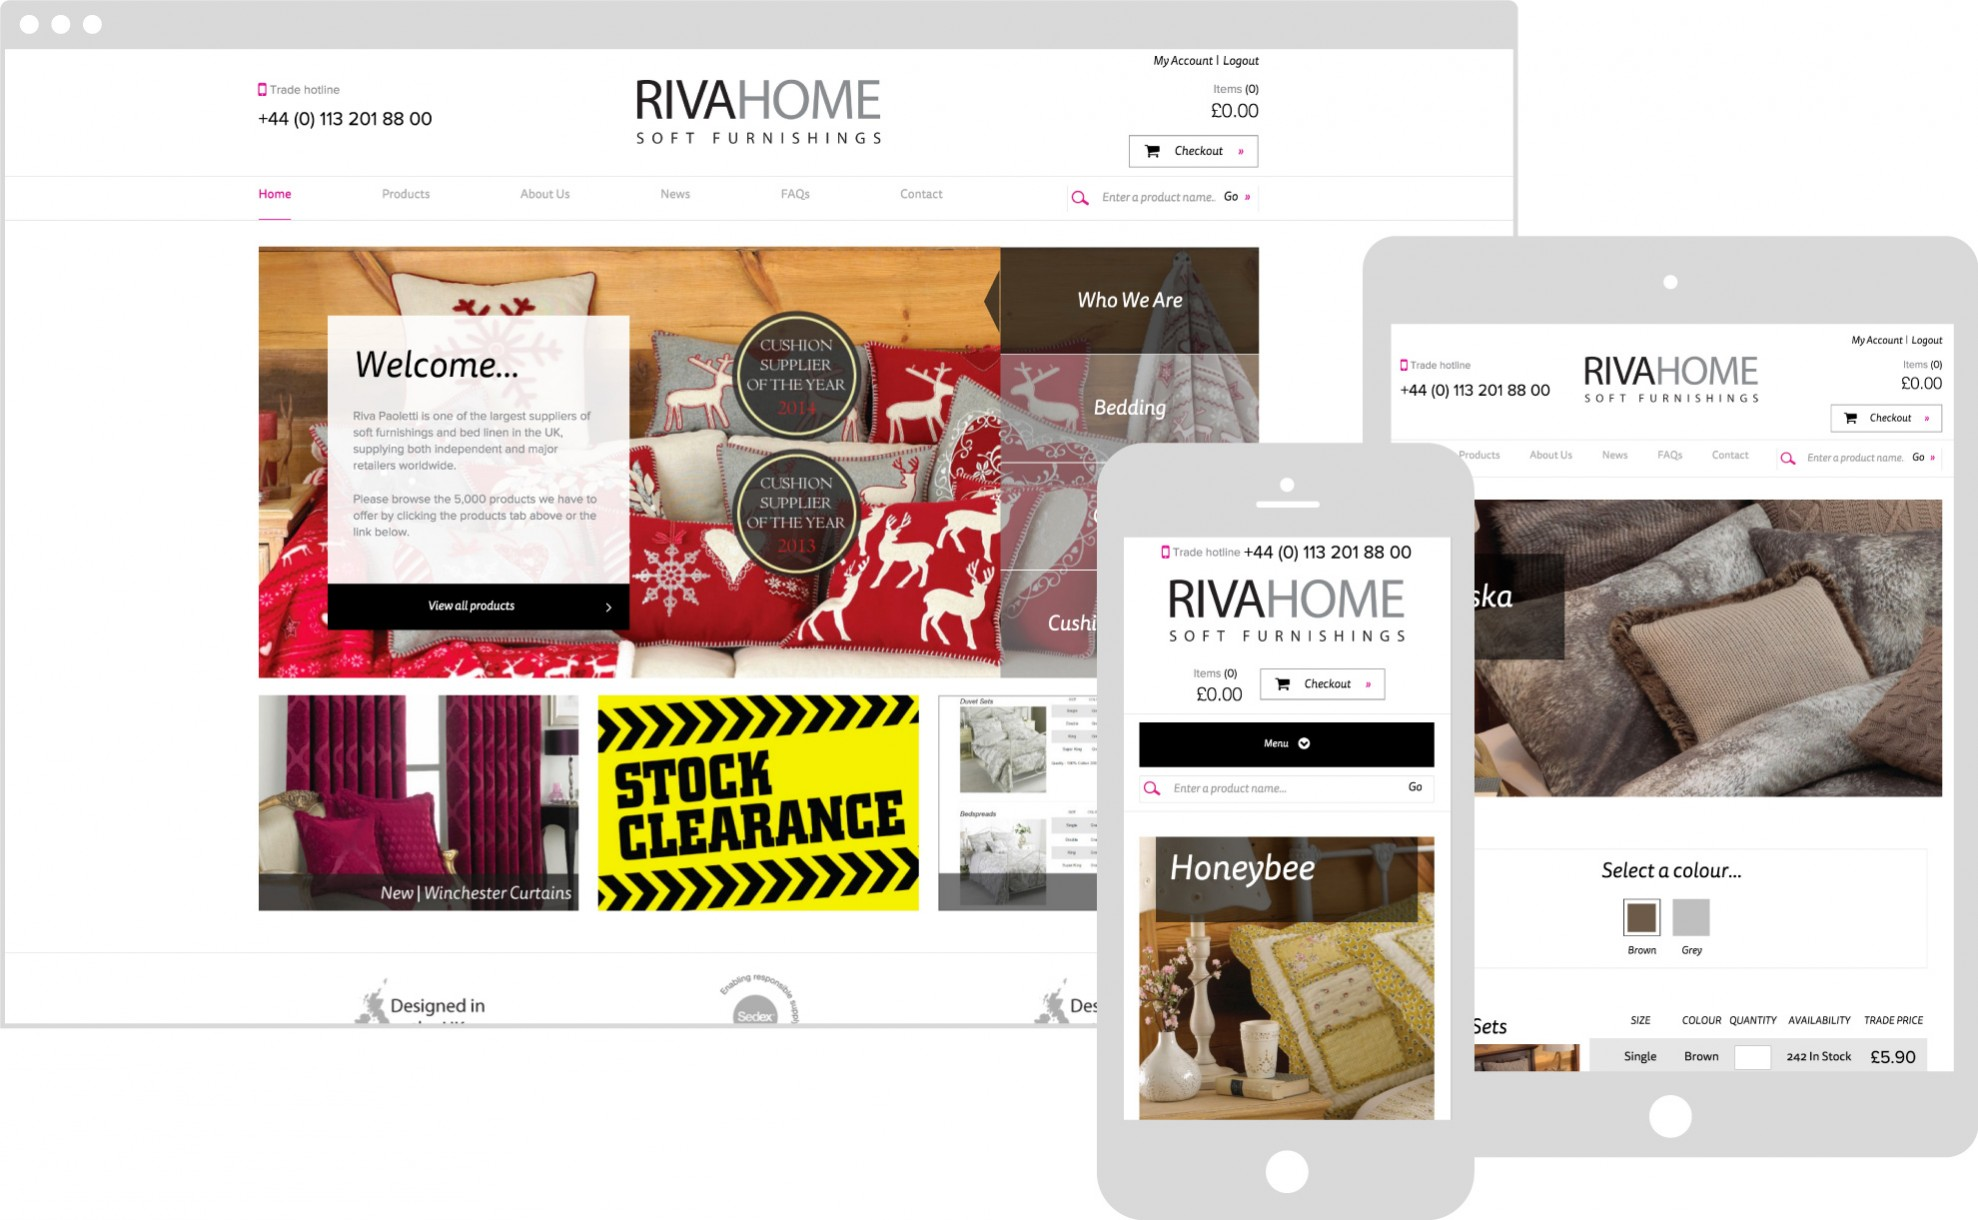 Riva Home Megento website featured on multiple devices